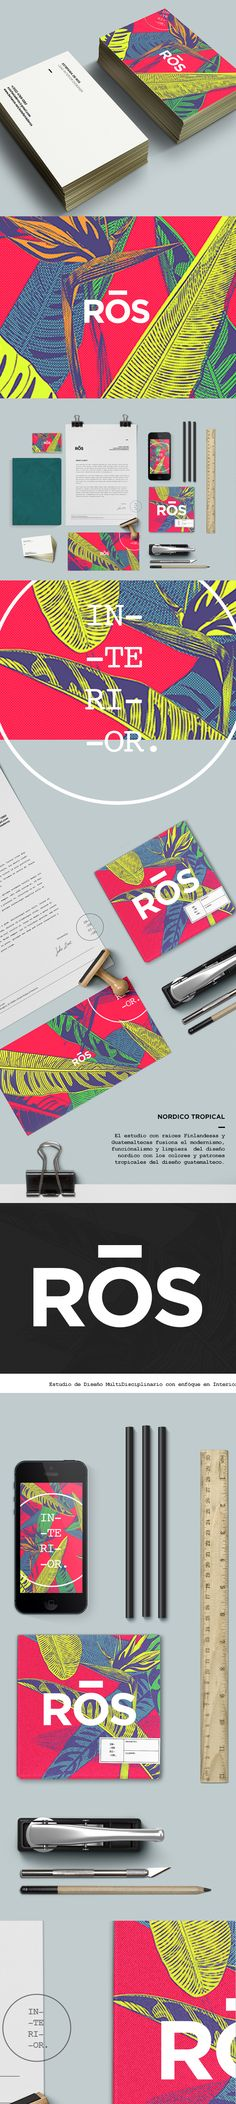 Ros Interior Design by Gustavo Quintana via Designspiration — Design Inspiration